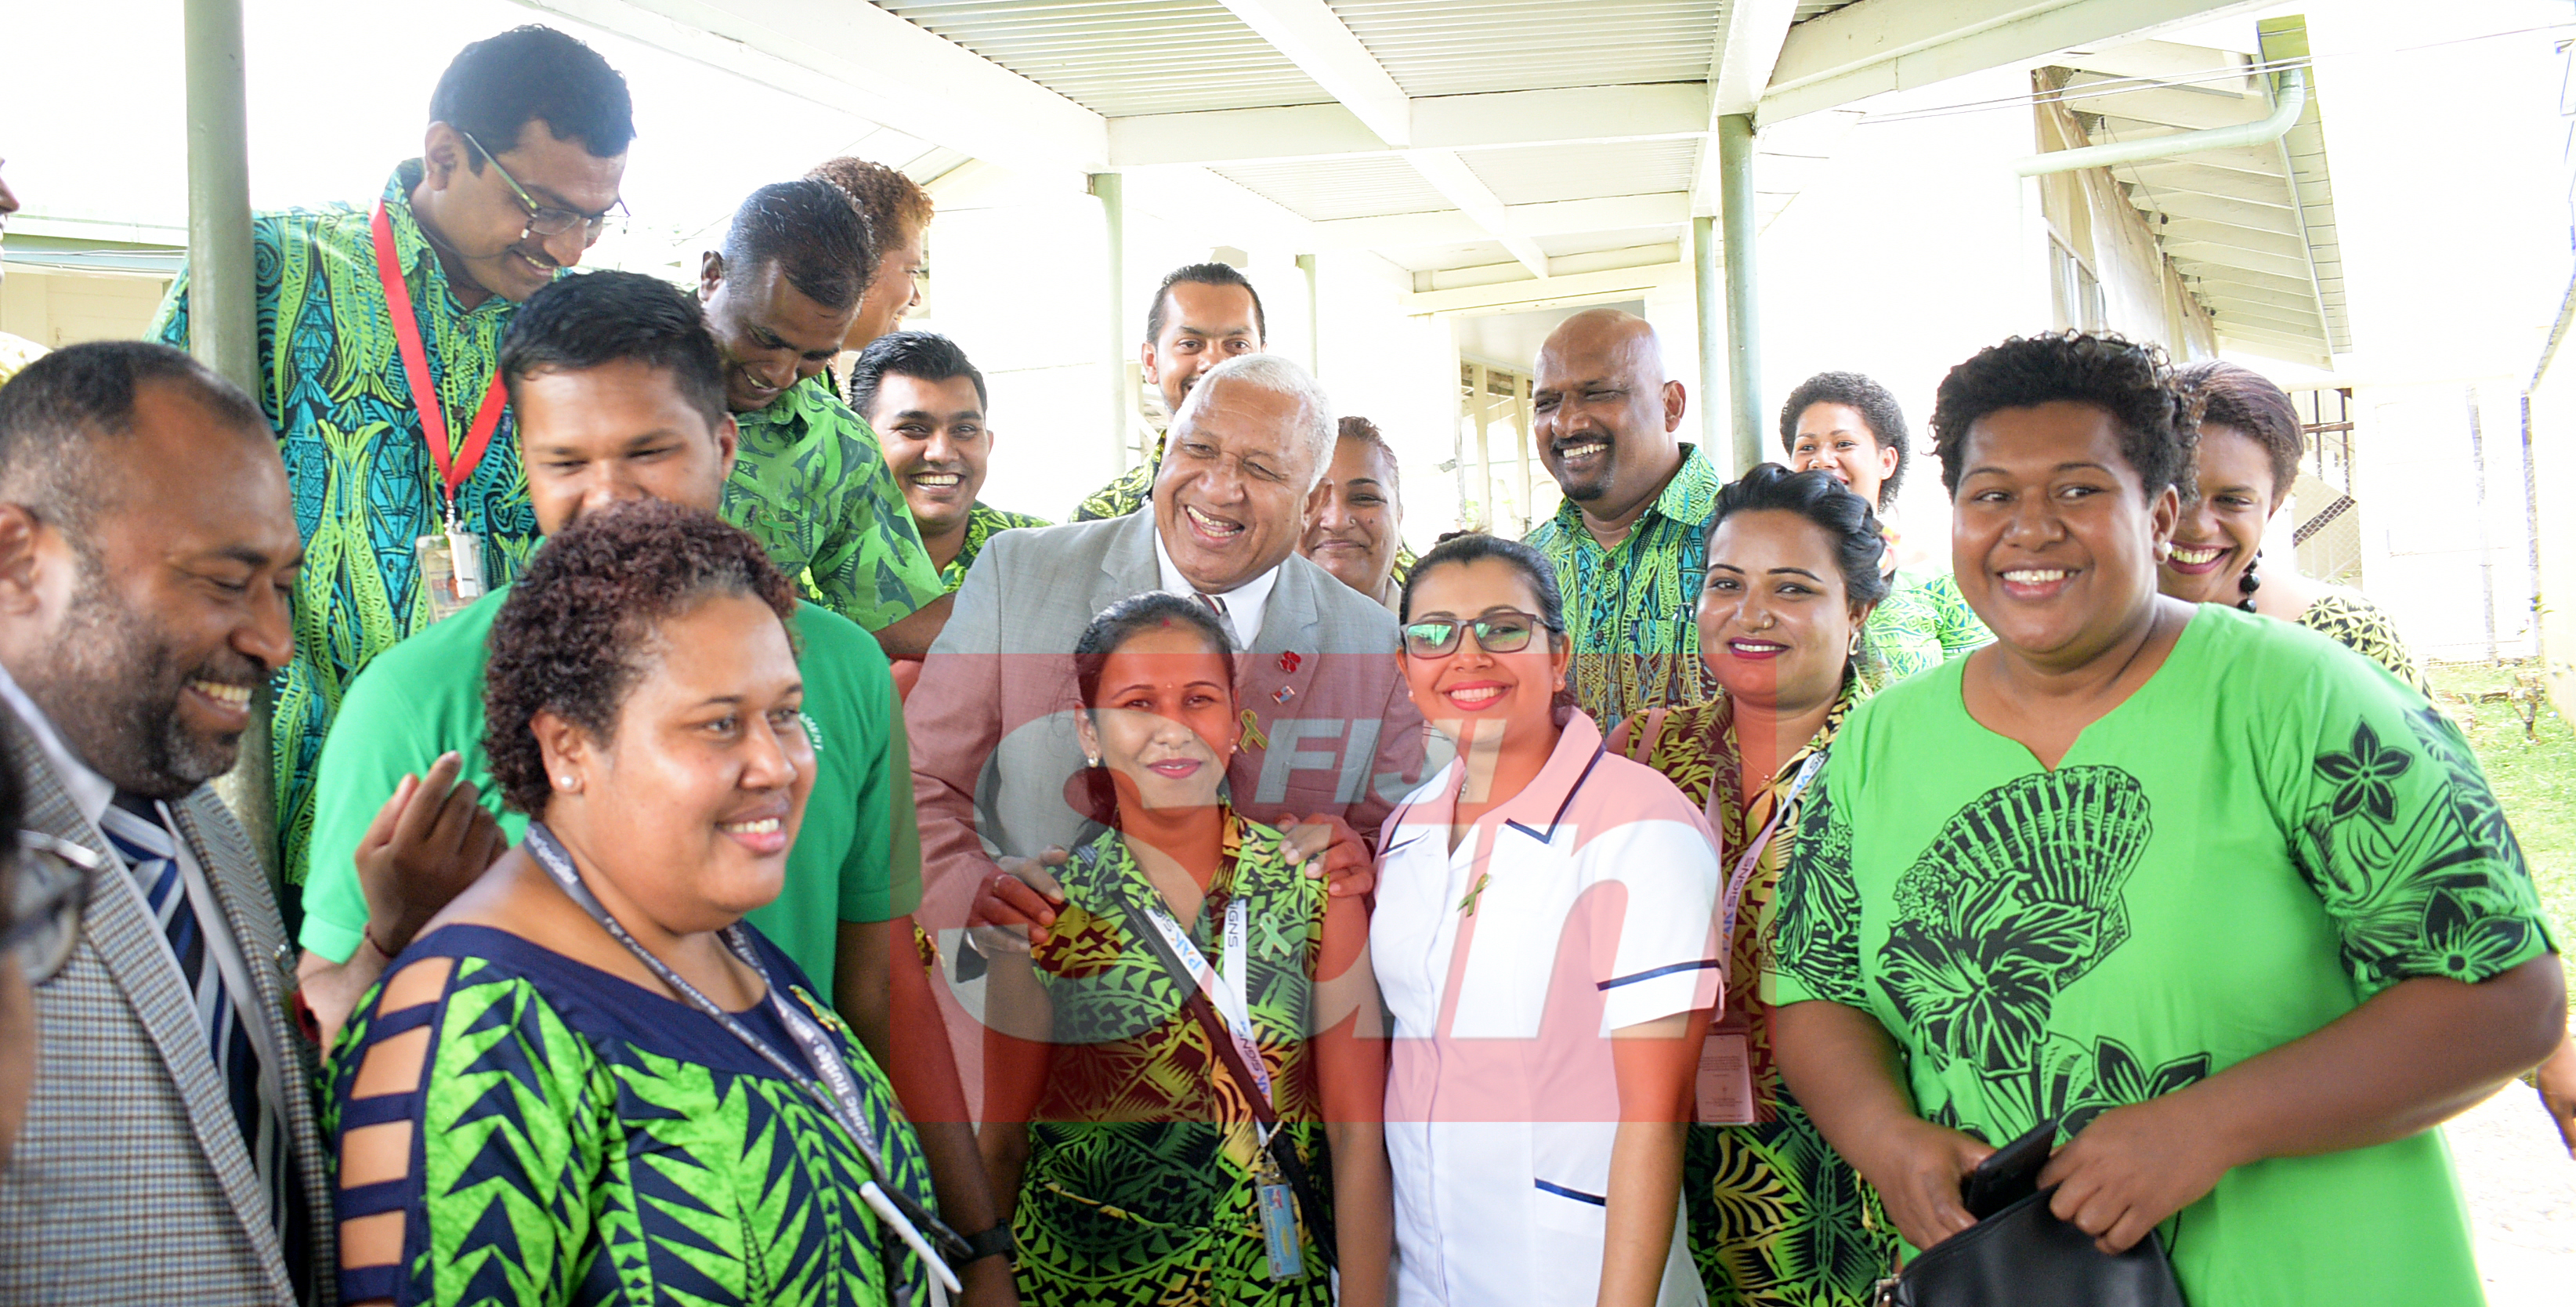 Prime Minister Voreqe Bainimarama and Minister for Health and Medical Servicers Dr. Iferemi Waqainabete with St. Giles Hospital staff after opening the Alcohol and Drug unit (AOD Unit) on November 6, 2019. Photo: Ronald Kumar.